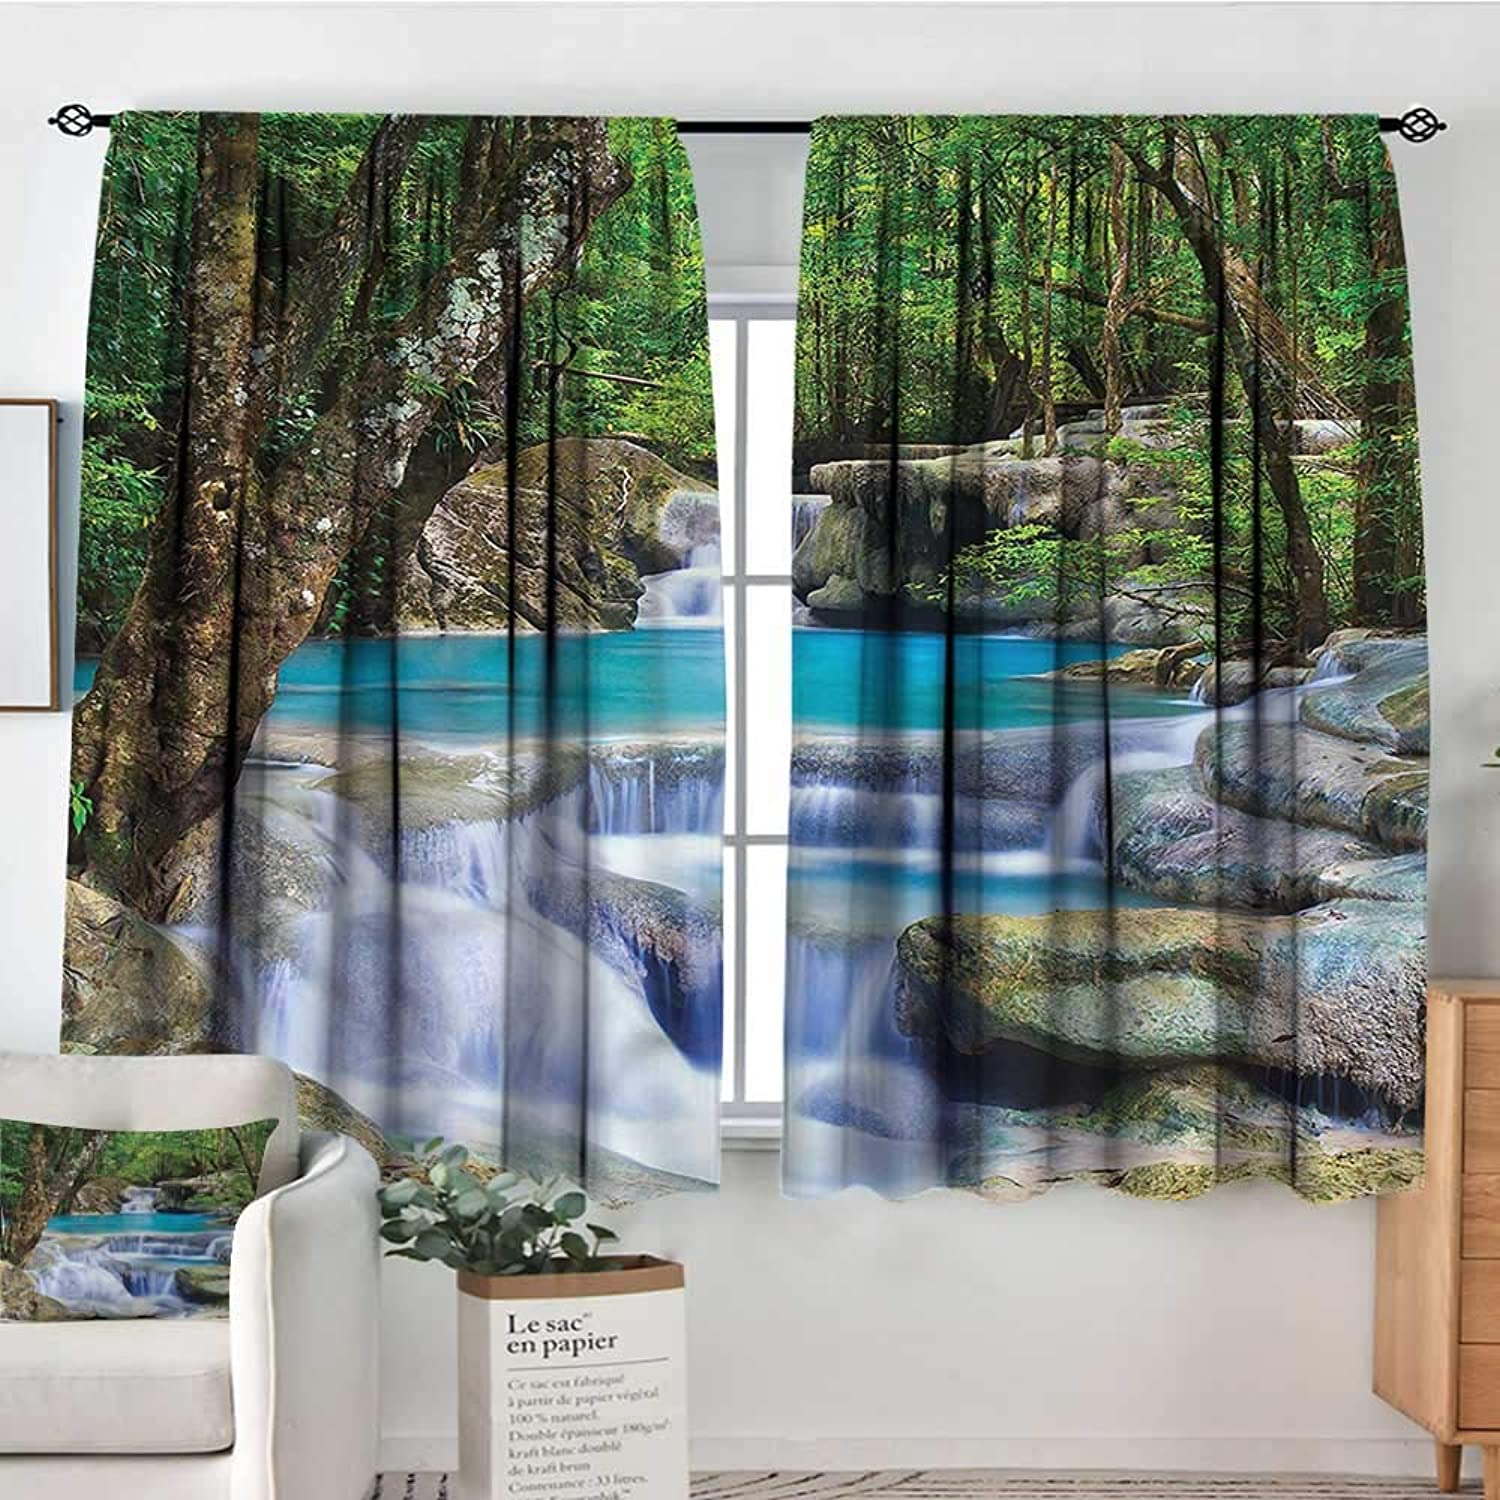 Familytaste Waterfall,Rod Curtains Rocks in Waterfall Lake 42 X54  Backout Curtains for Kids Iving Room